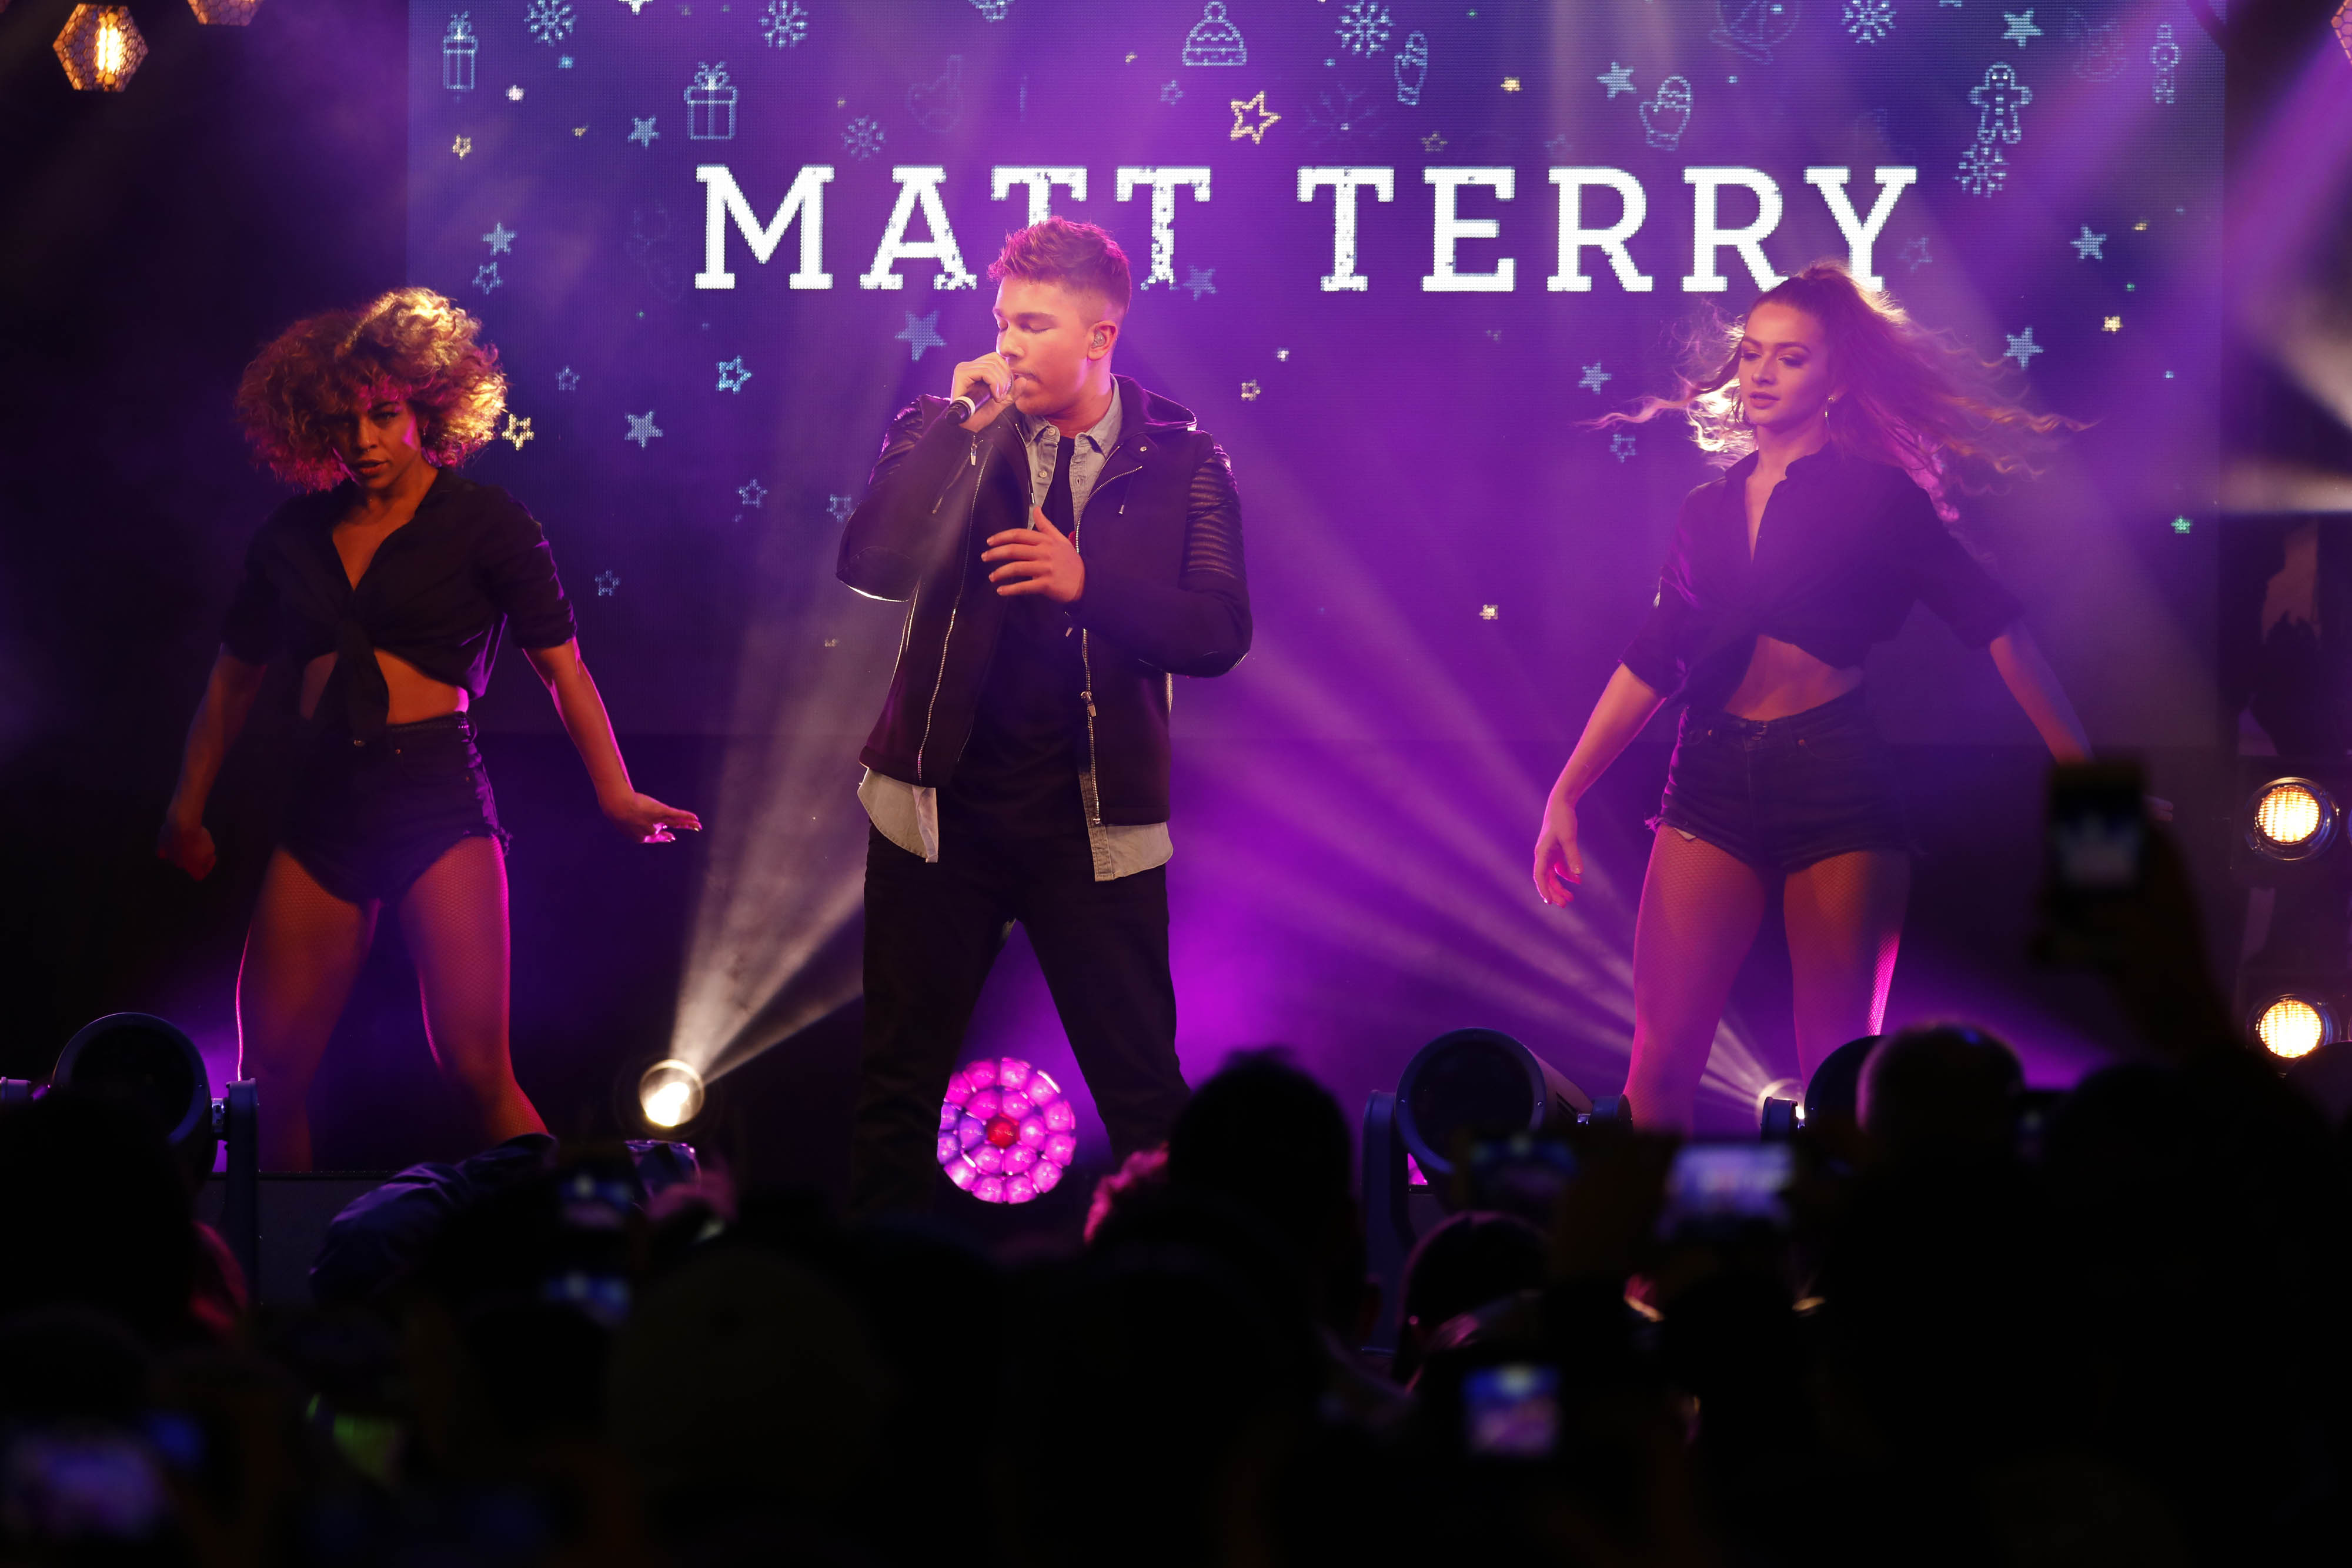 EDITORIAL USE ONLY X Factor 2016 winner Matt Terry performs at the Oxford Street Christmas Lights Switch On in central London, in partnership with NSPCC 'Light Up Christmas for Children' campaign. PRESS ASSOCIATION Photo. Picture date: Tuesday November 7, 2017. Now in its 58th year of celebrations, the Oxford Street Christmas Lights will use 750,000 LED bulbs and 1,778 baubles in a snowfall theme blanketing the whole mile of shopping street. Photo credit should read: David Parry/PA Wire